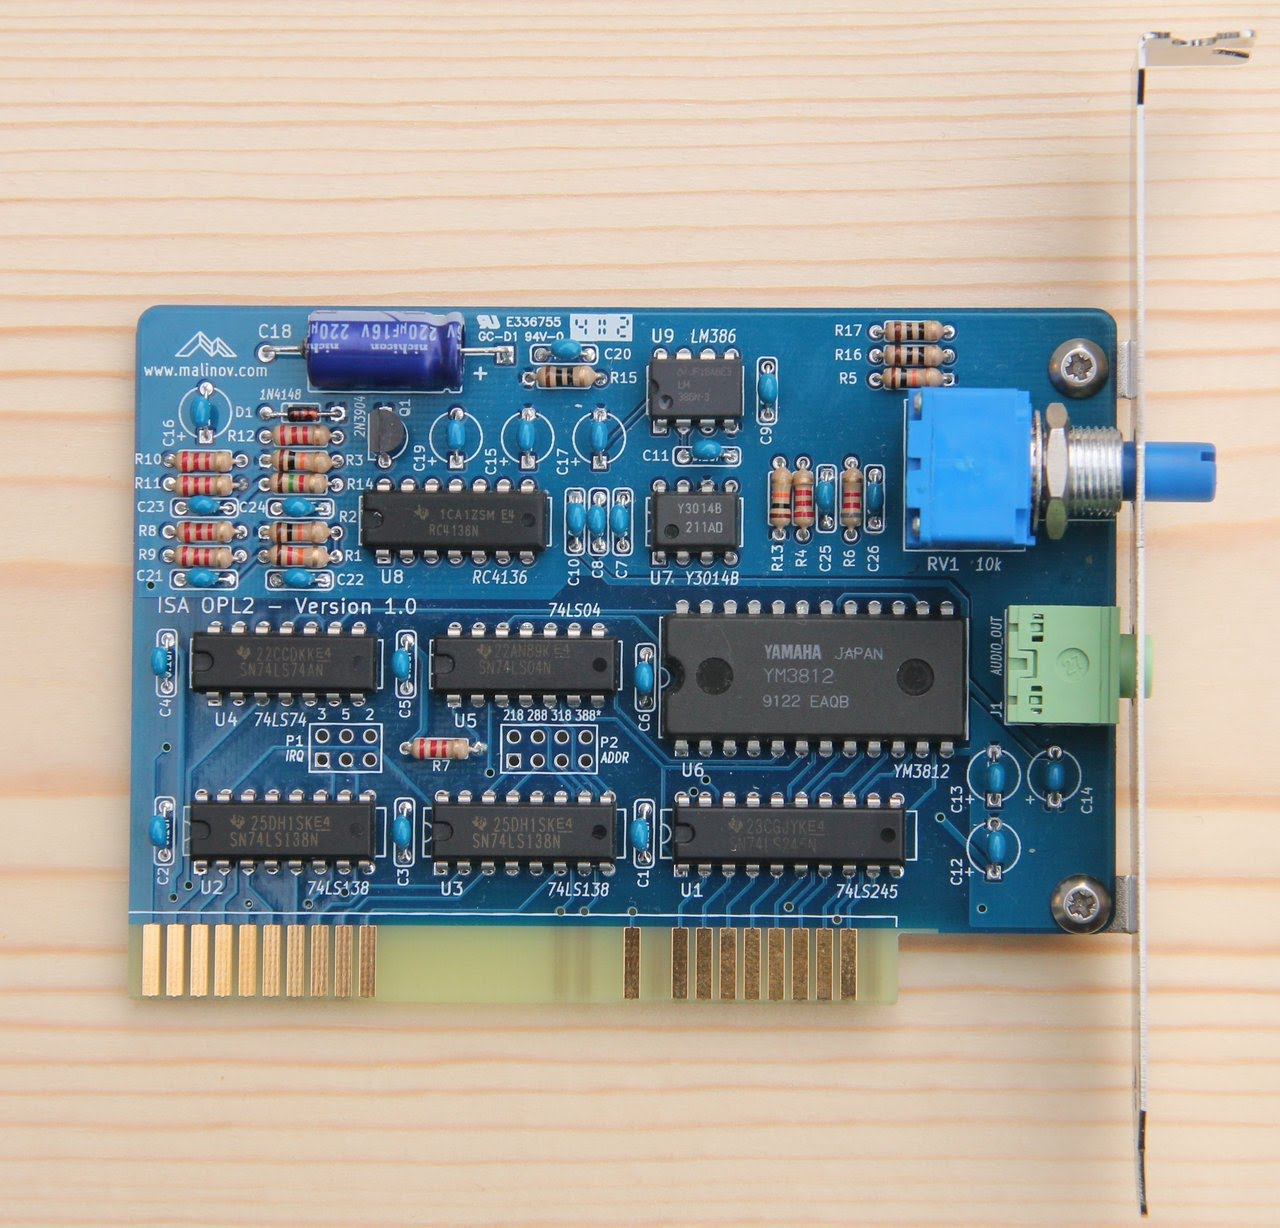 hight resolution of isa opl2 complete board jpg